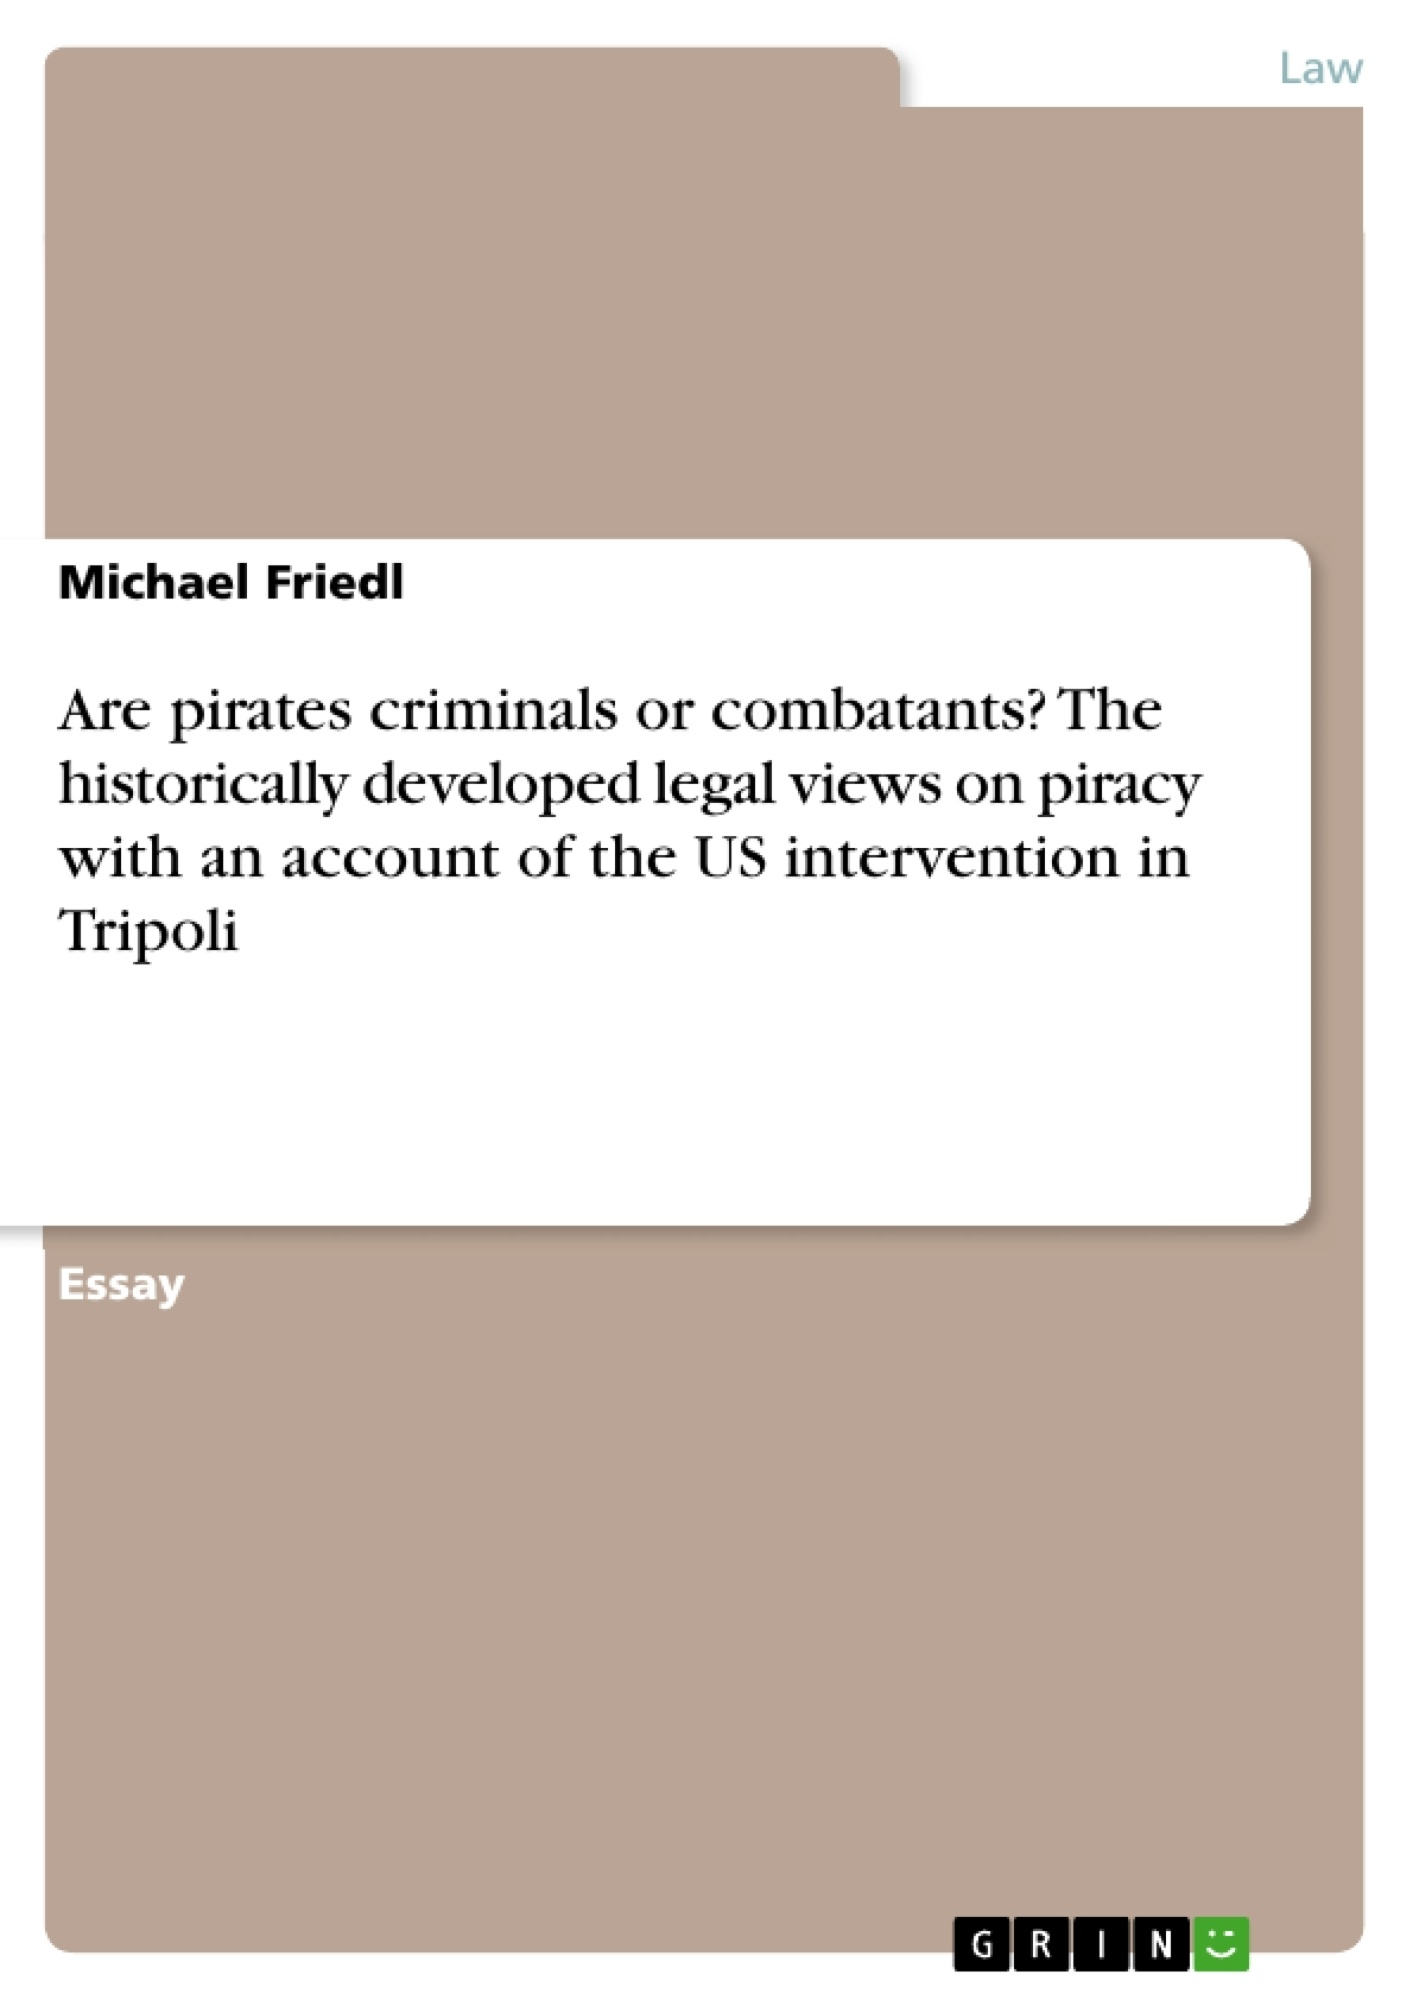 Title: Are pirates criminals or combatants? The historically developed legal views on piracy with an account of the US intervention in Tripoli